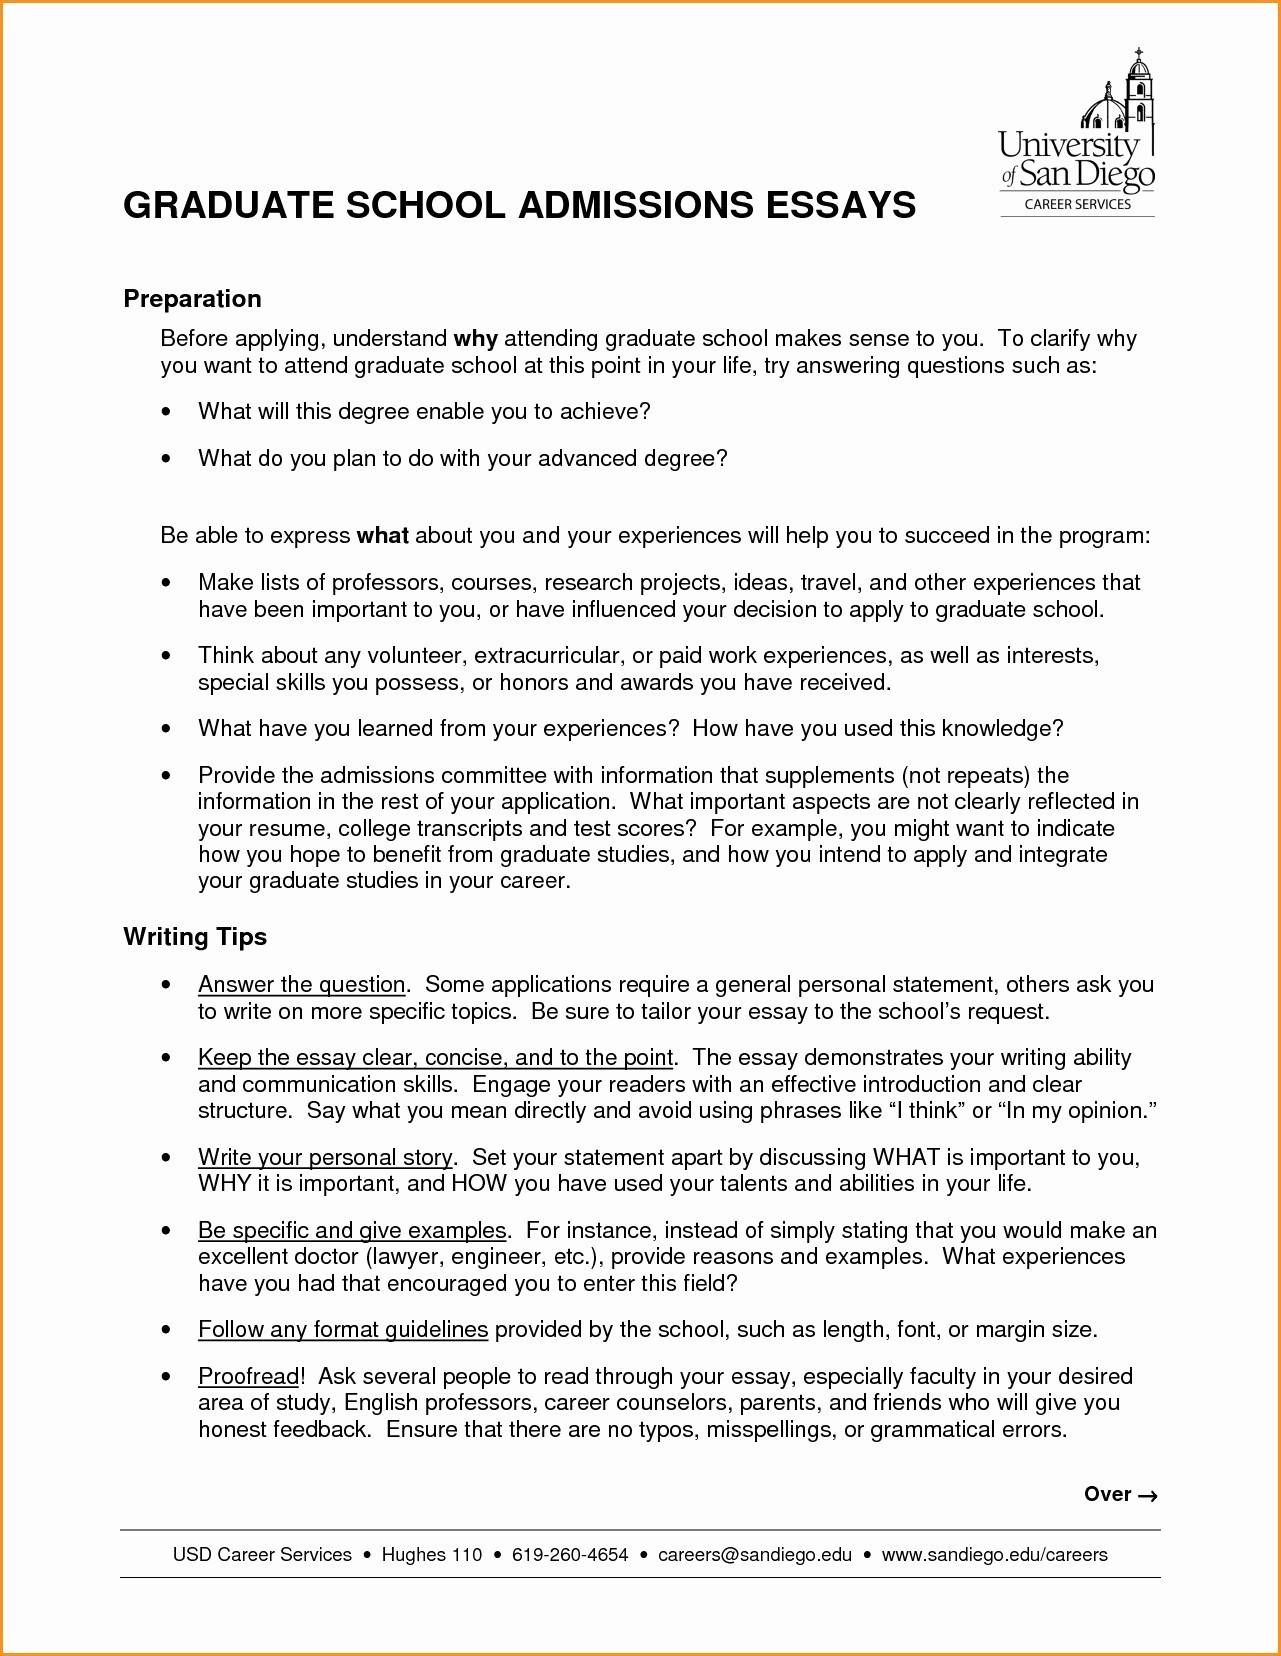 020 Essay Example Standard Format Writing Personal Latest Student Valid Elegant Recent Graduate Cover Letter Impressive For College Apa Essay/report Ielts Full